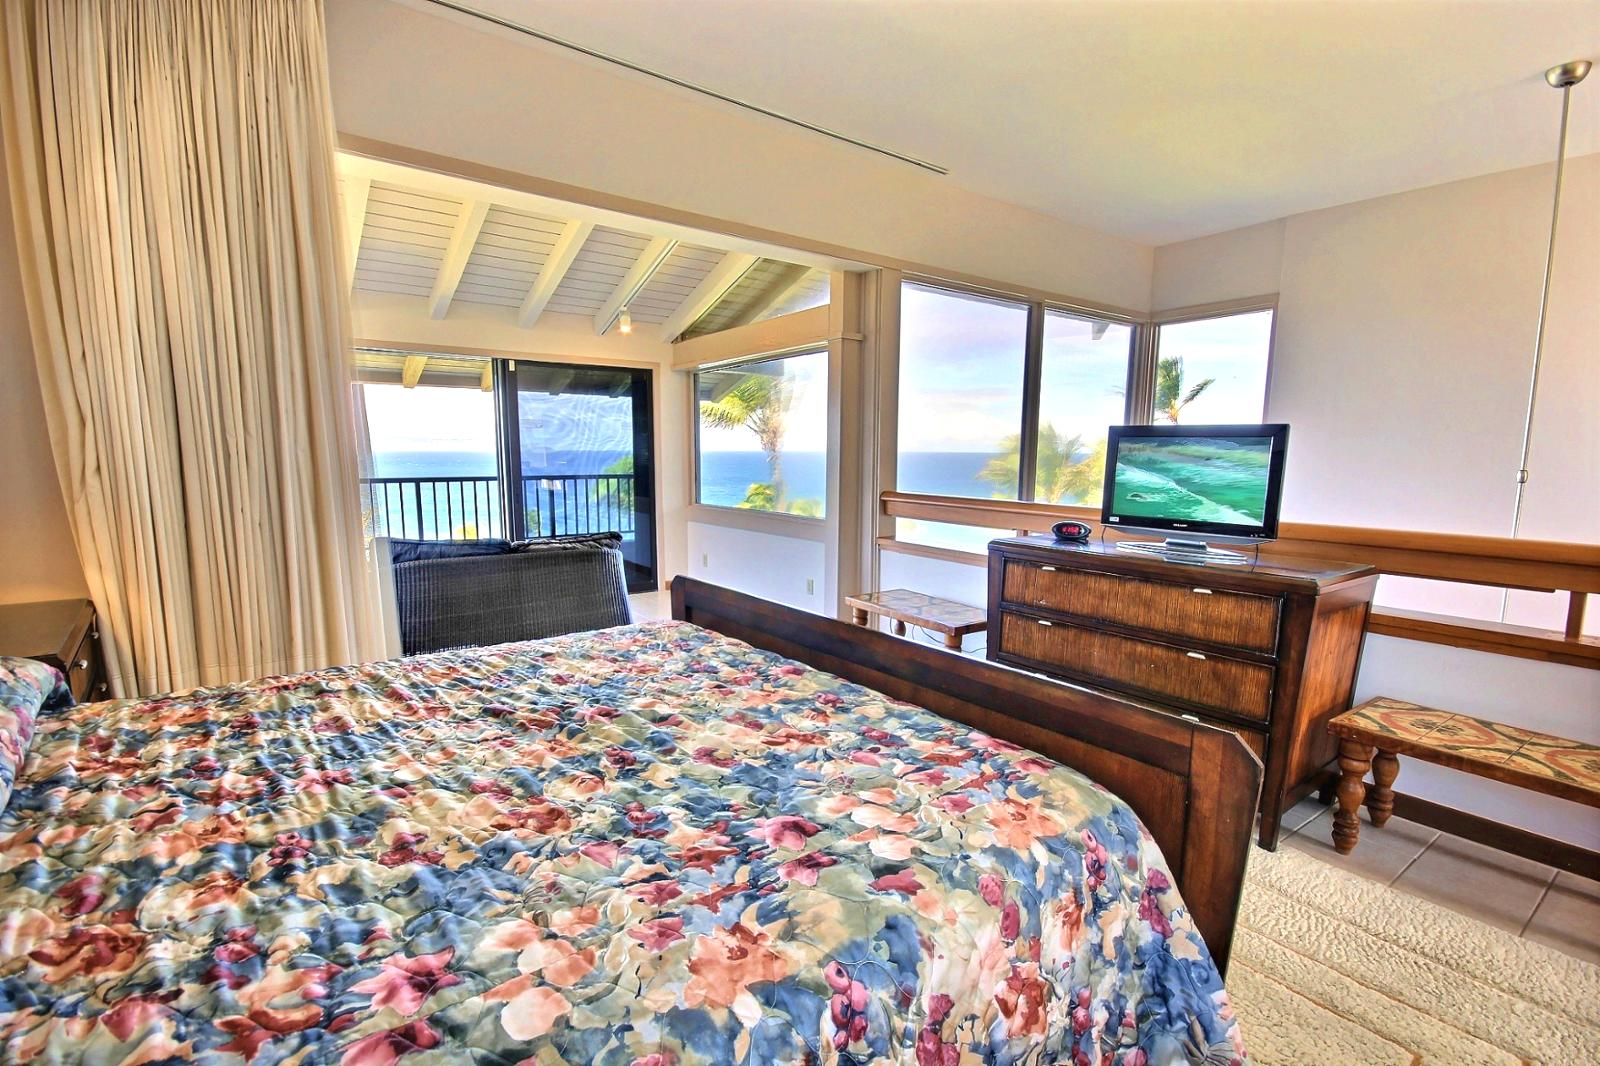 Large King size bed with an amazing view. Wake up and enjoy Ocean Views throughout this villa.